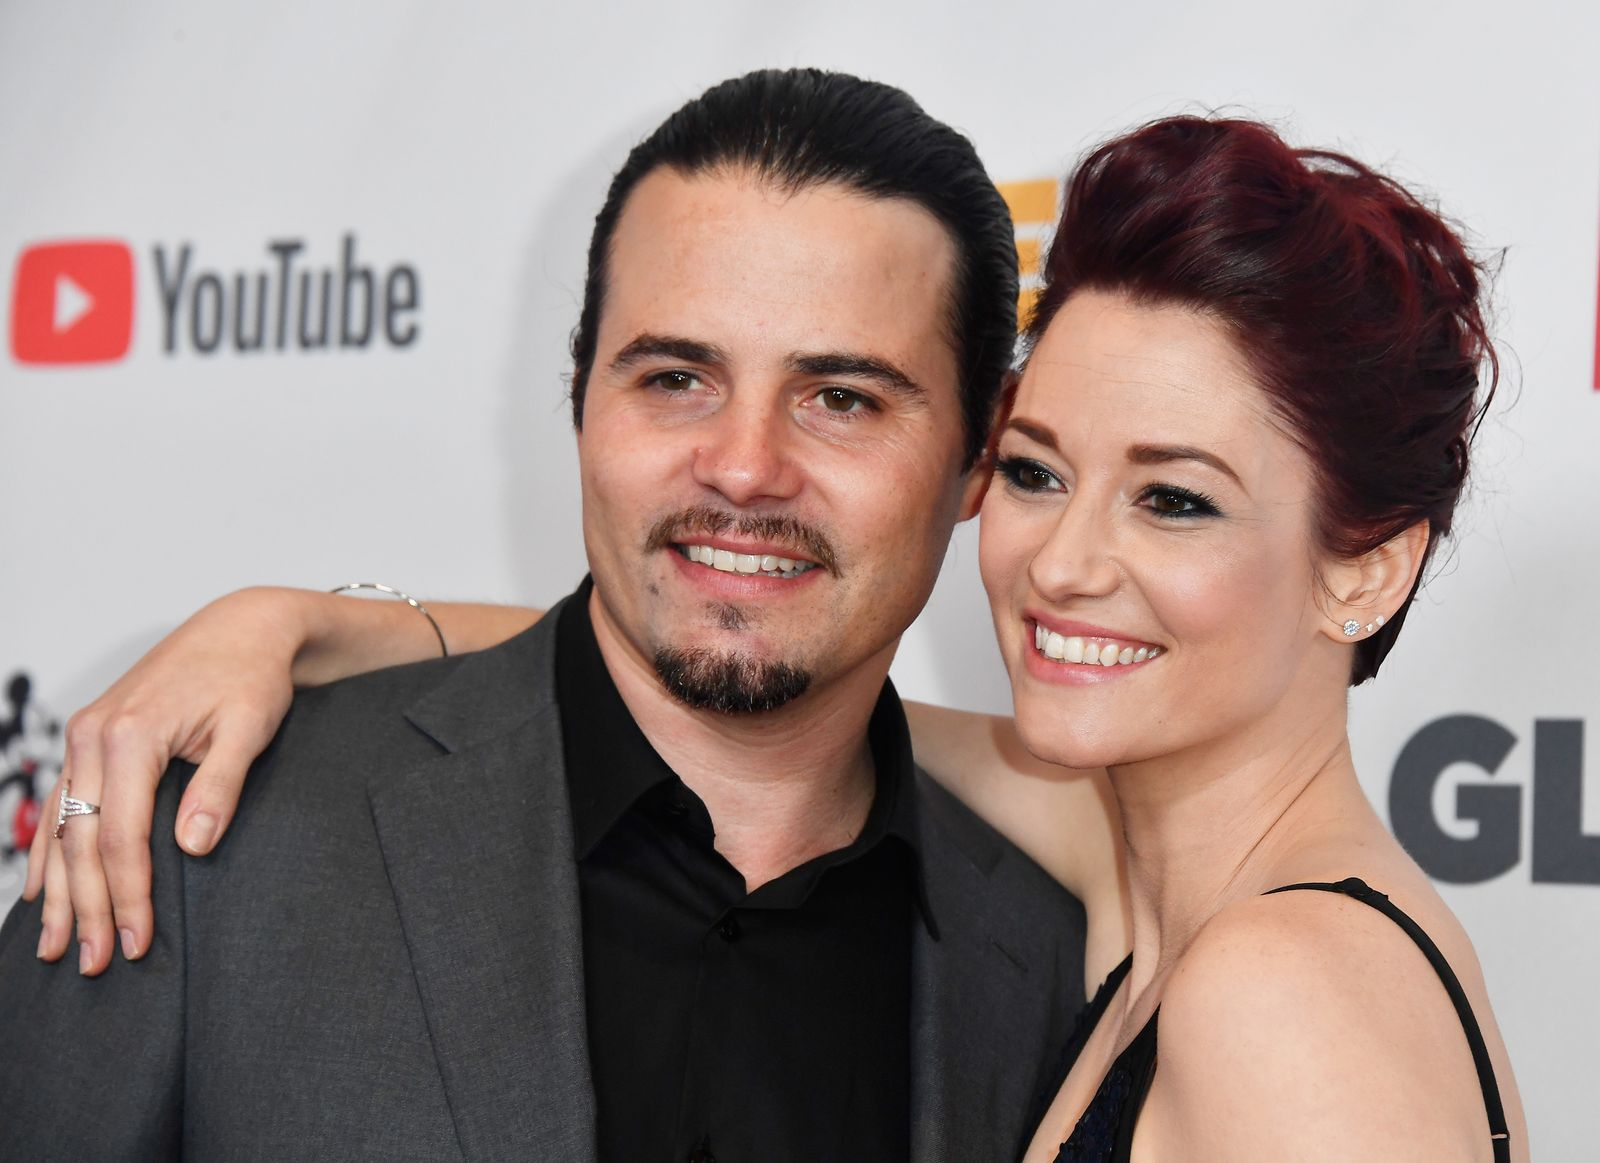 Nathan West and Chyler Leigh at the GLSEN Respect Awards on October 20, 2017, in Beverly Hills, California | Photo: Frazer Harrison/Getty Images